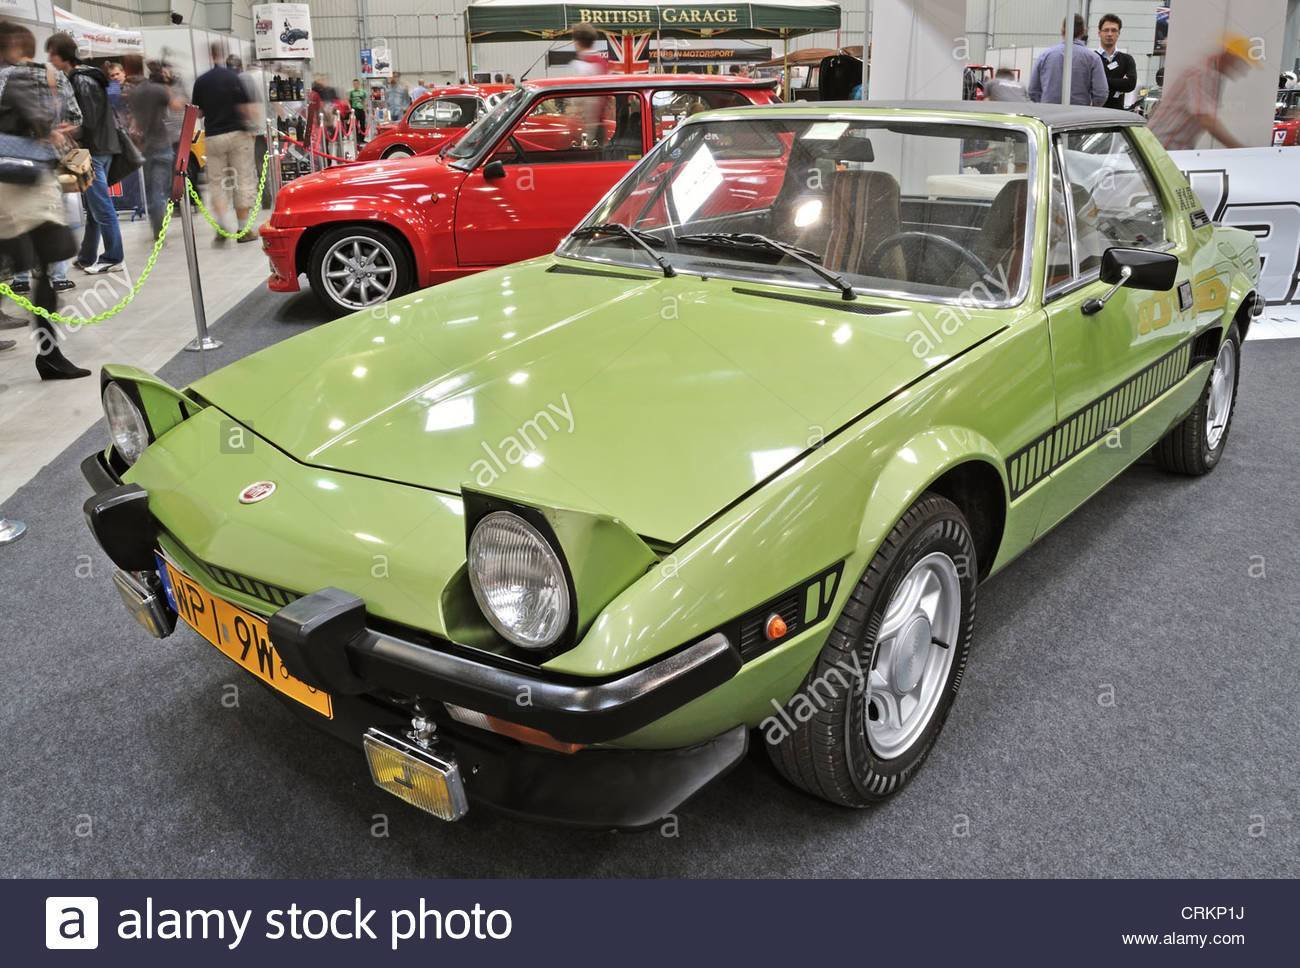 Latest Vintage Sports Car Fiat X1 9 Stock Photo Royalty Free Free Download